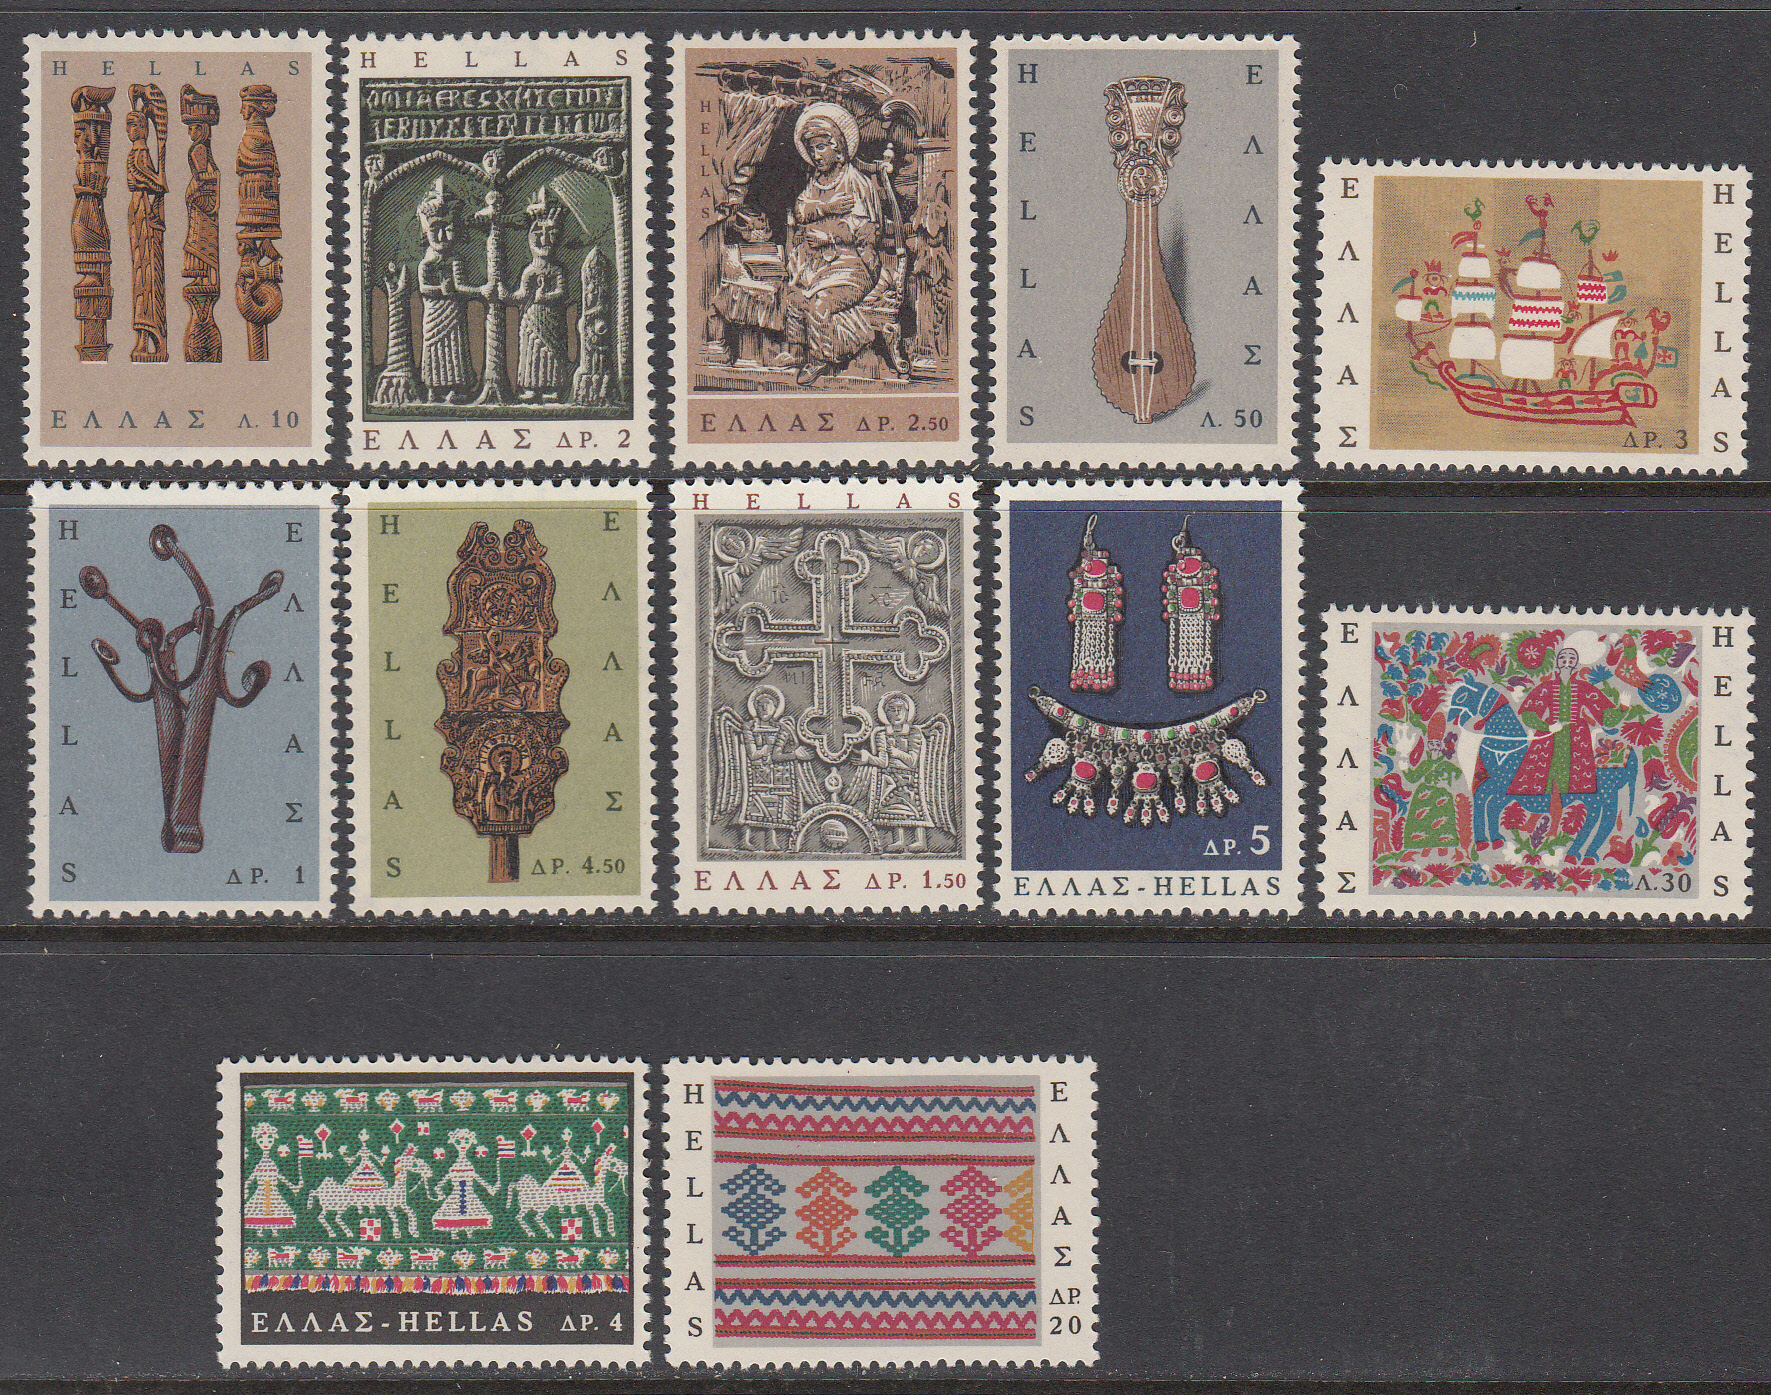 Greece Scott 0864-875, MNH, Definitive issue, complete set of 12